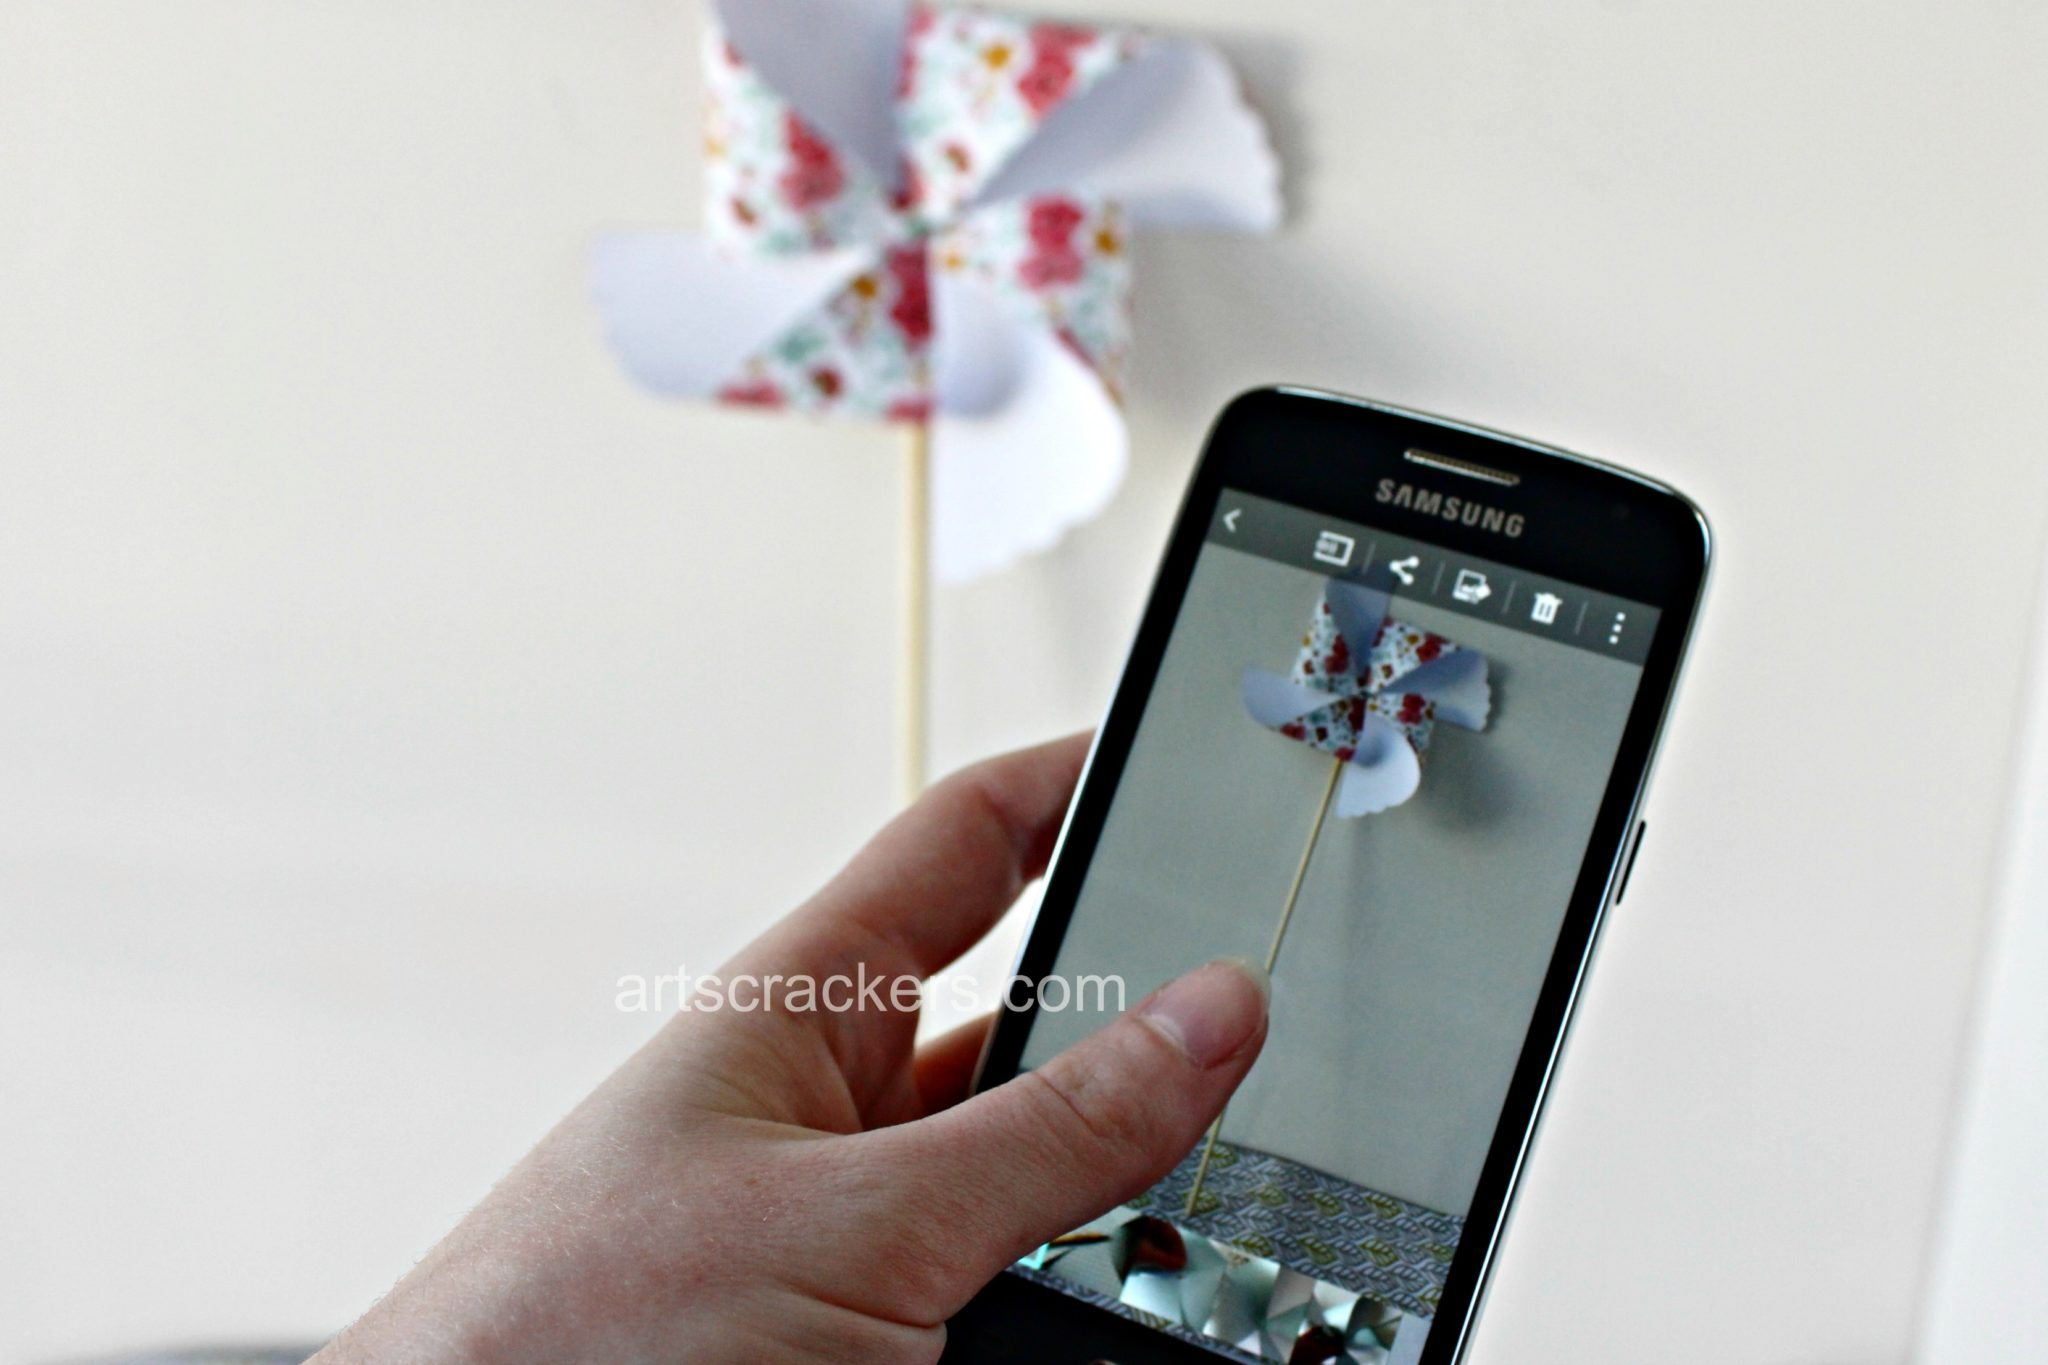 Samsung Galaxy Avant Walmart Family Mobile Sharing Pinwheel Craft. Click the picture to read the post.